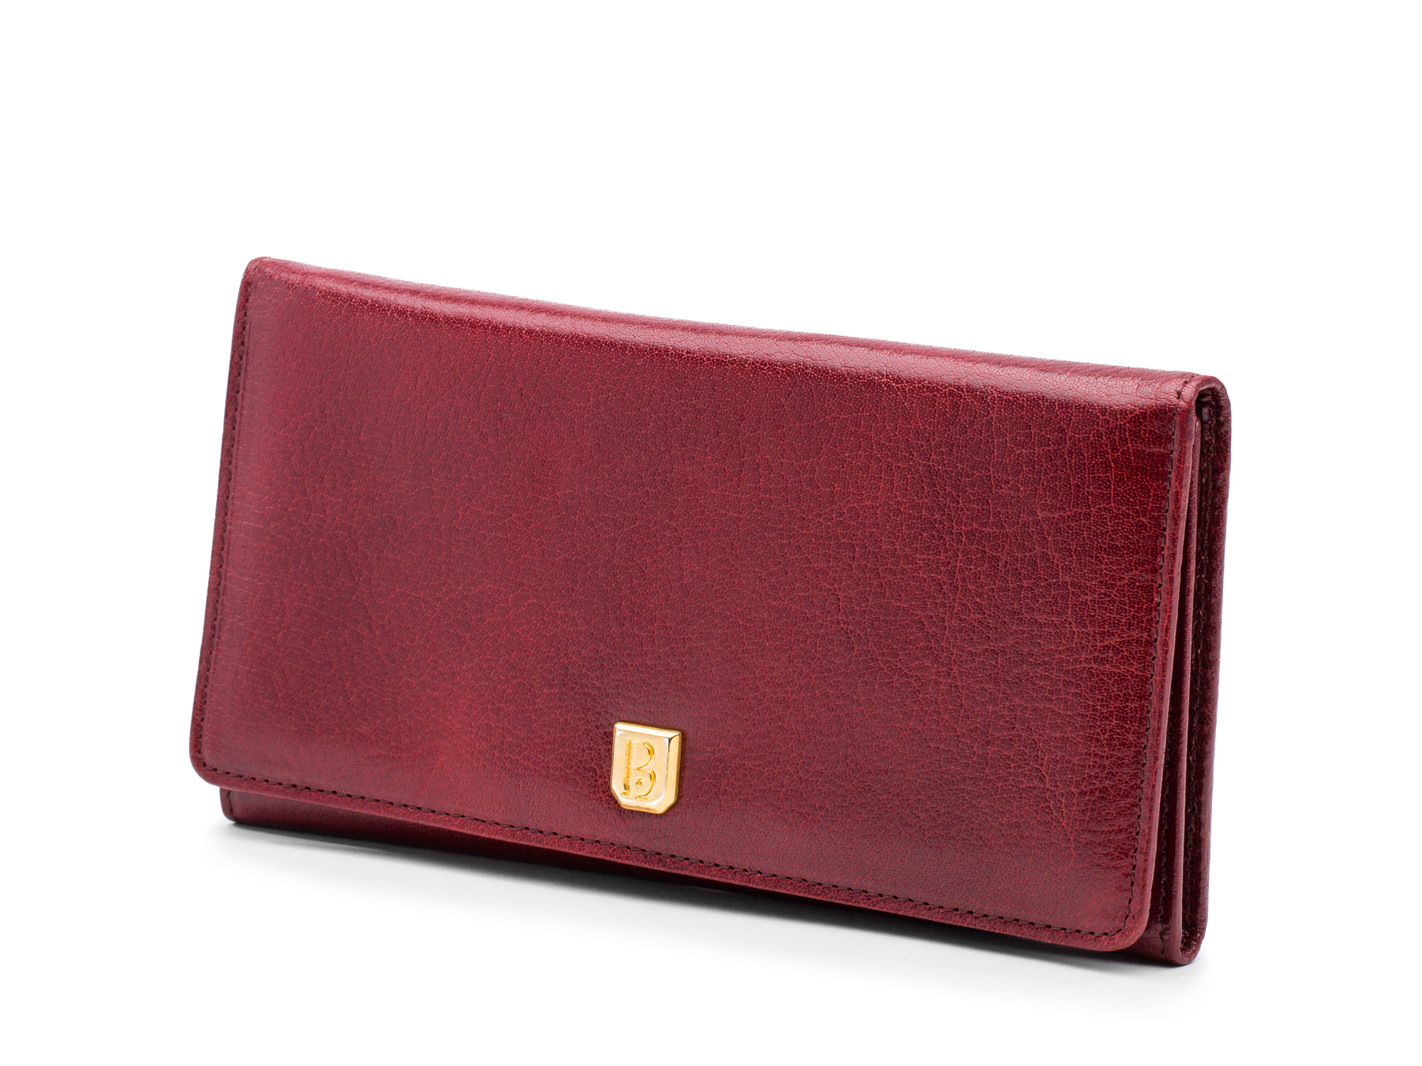 Oxblood 8 Pocket Vertical Wallet - 72 Oxblood